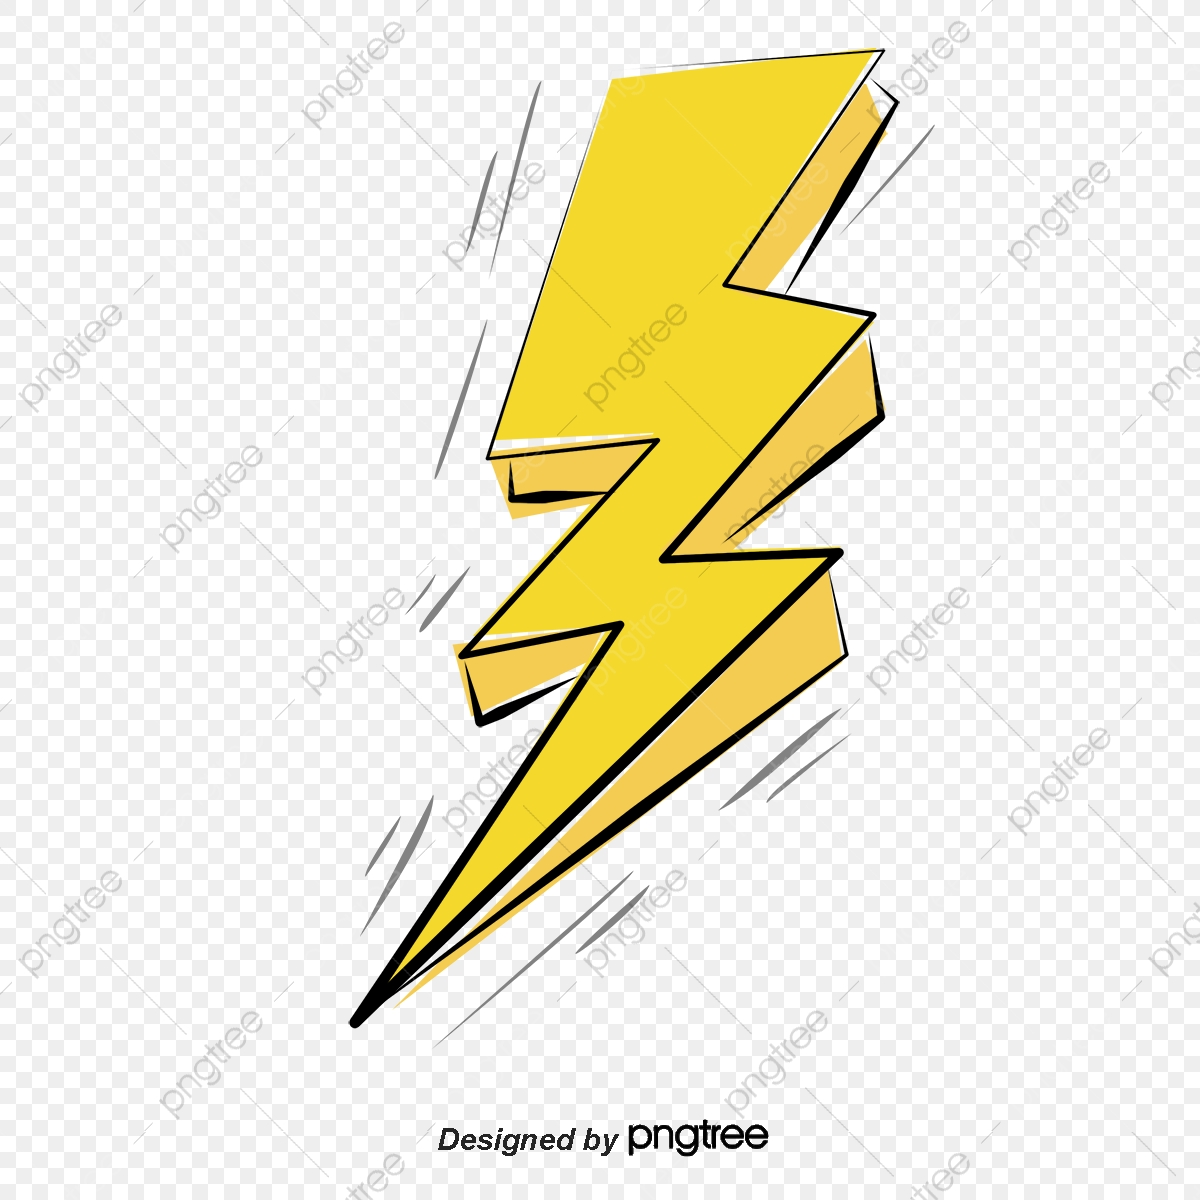 thunder and lightning effect vector png yellow lightning hand painted lightning png transparent clipart image and psd file for free download https pngtree com freepng thunder and lightning effect 3279599 html